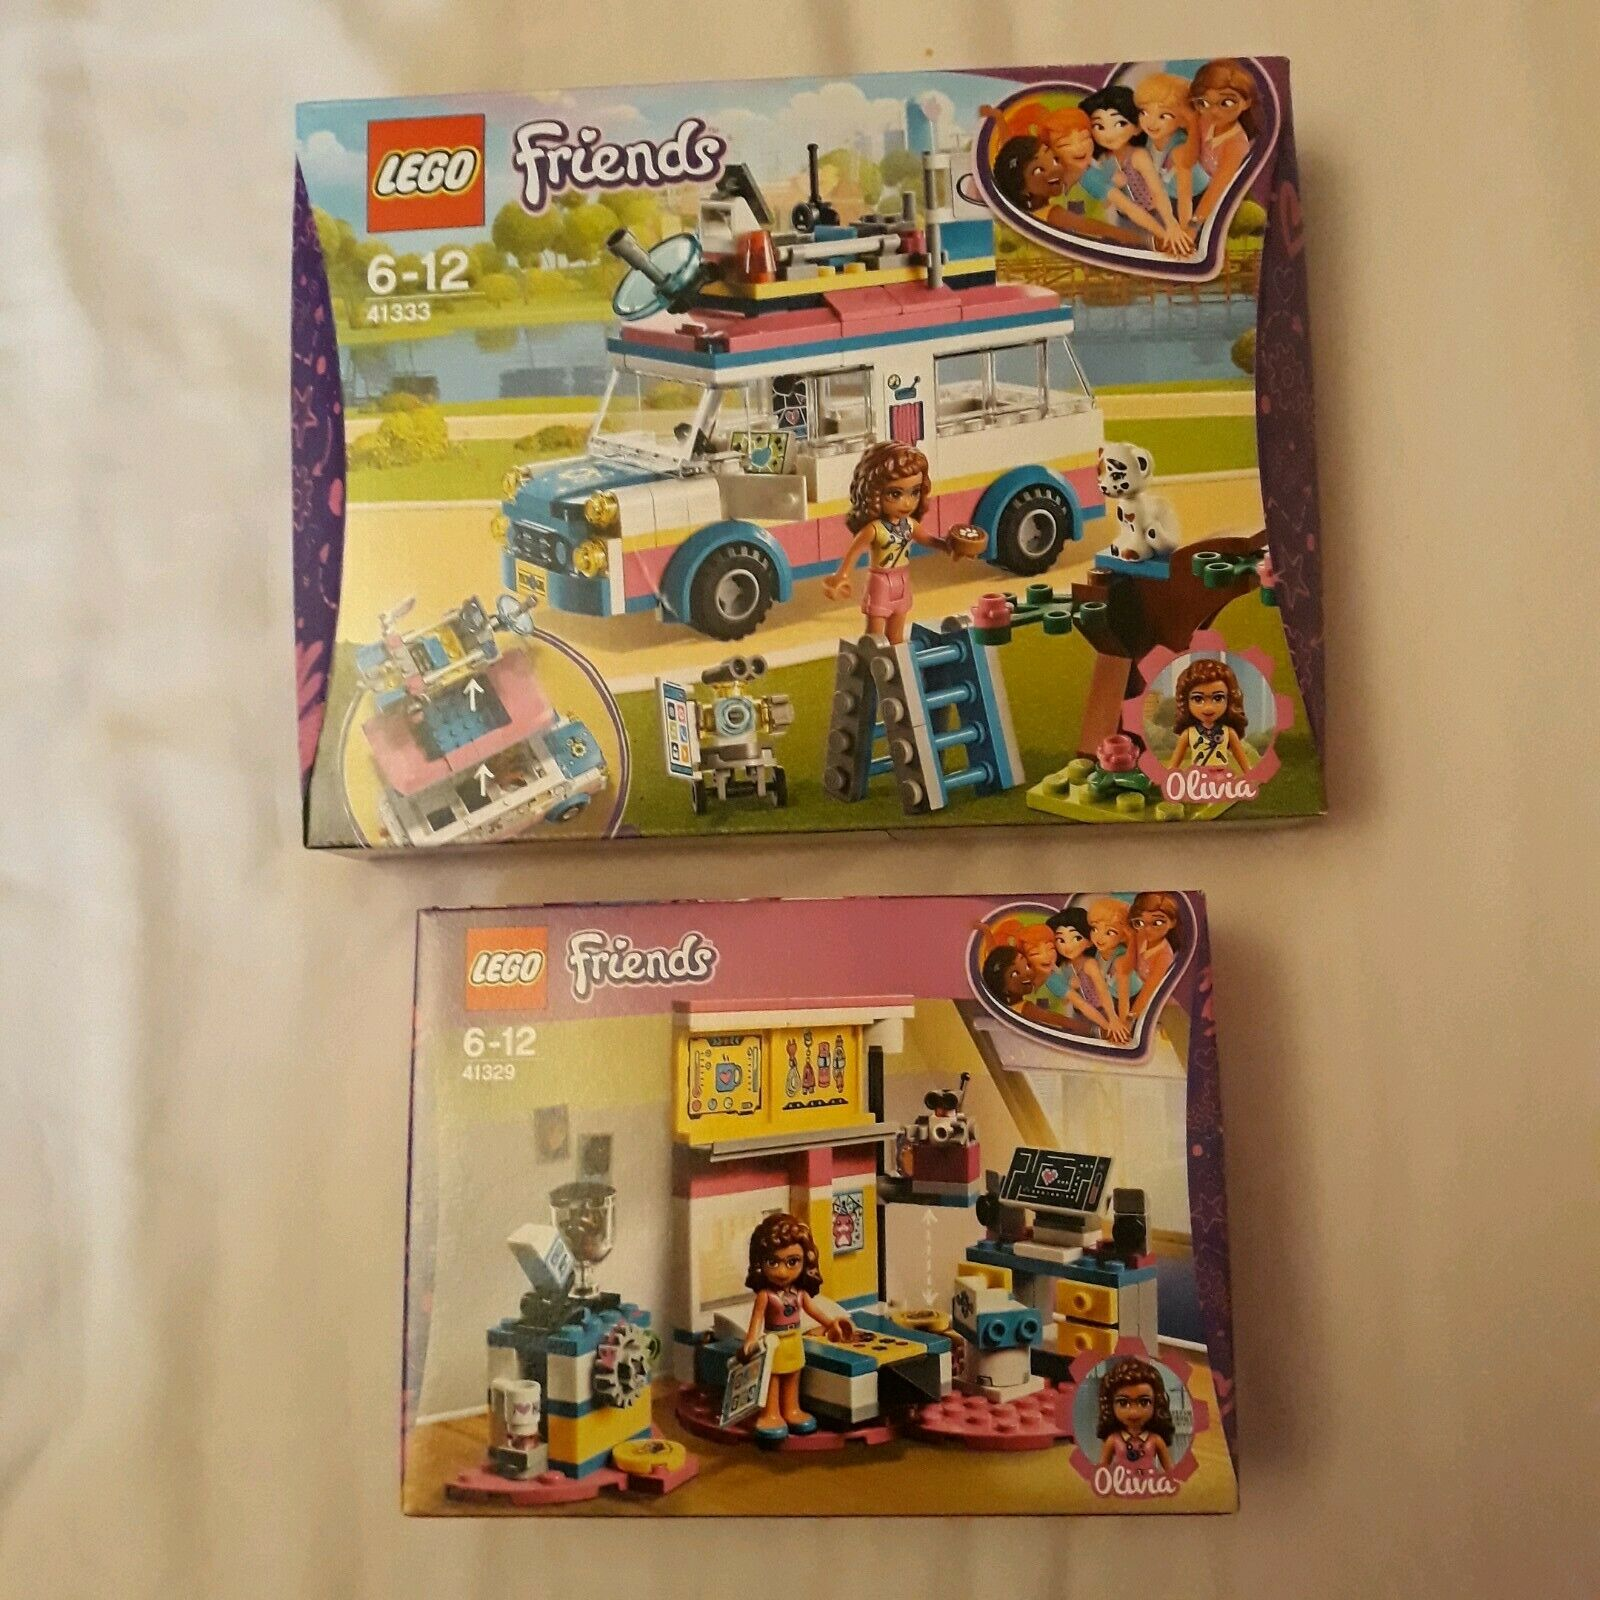 Lego Friends 41333 Olivias Mission Vehicle Olivias Deluxe